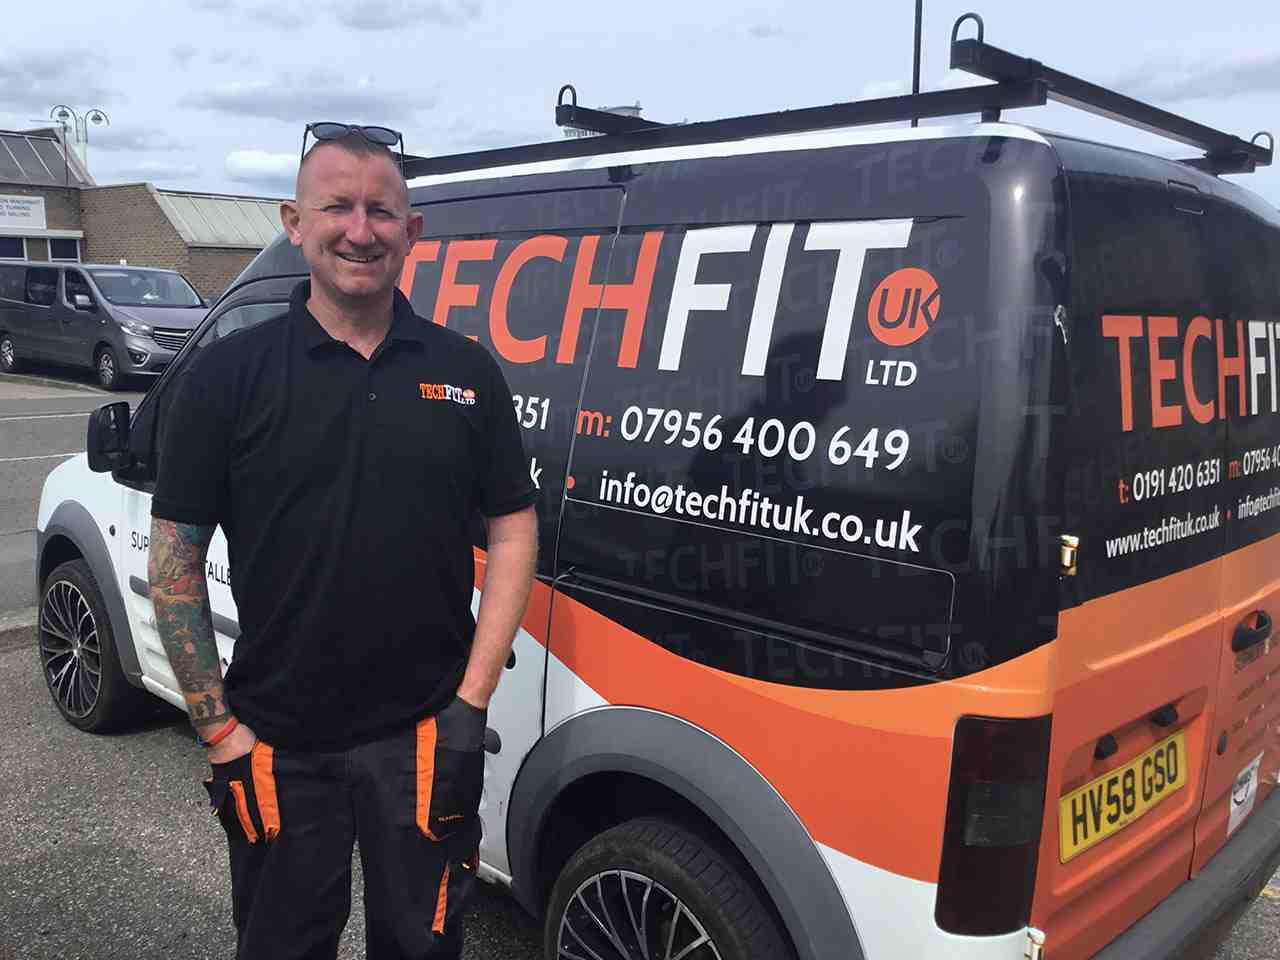 Techfit UK - Glenn Skelton stood next to van2